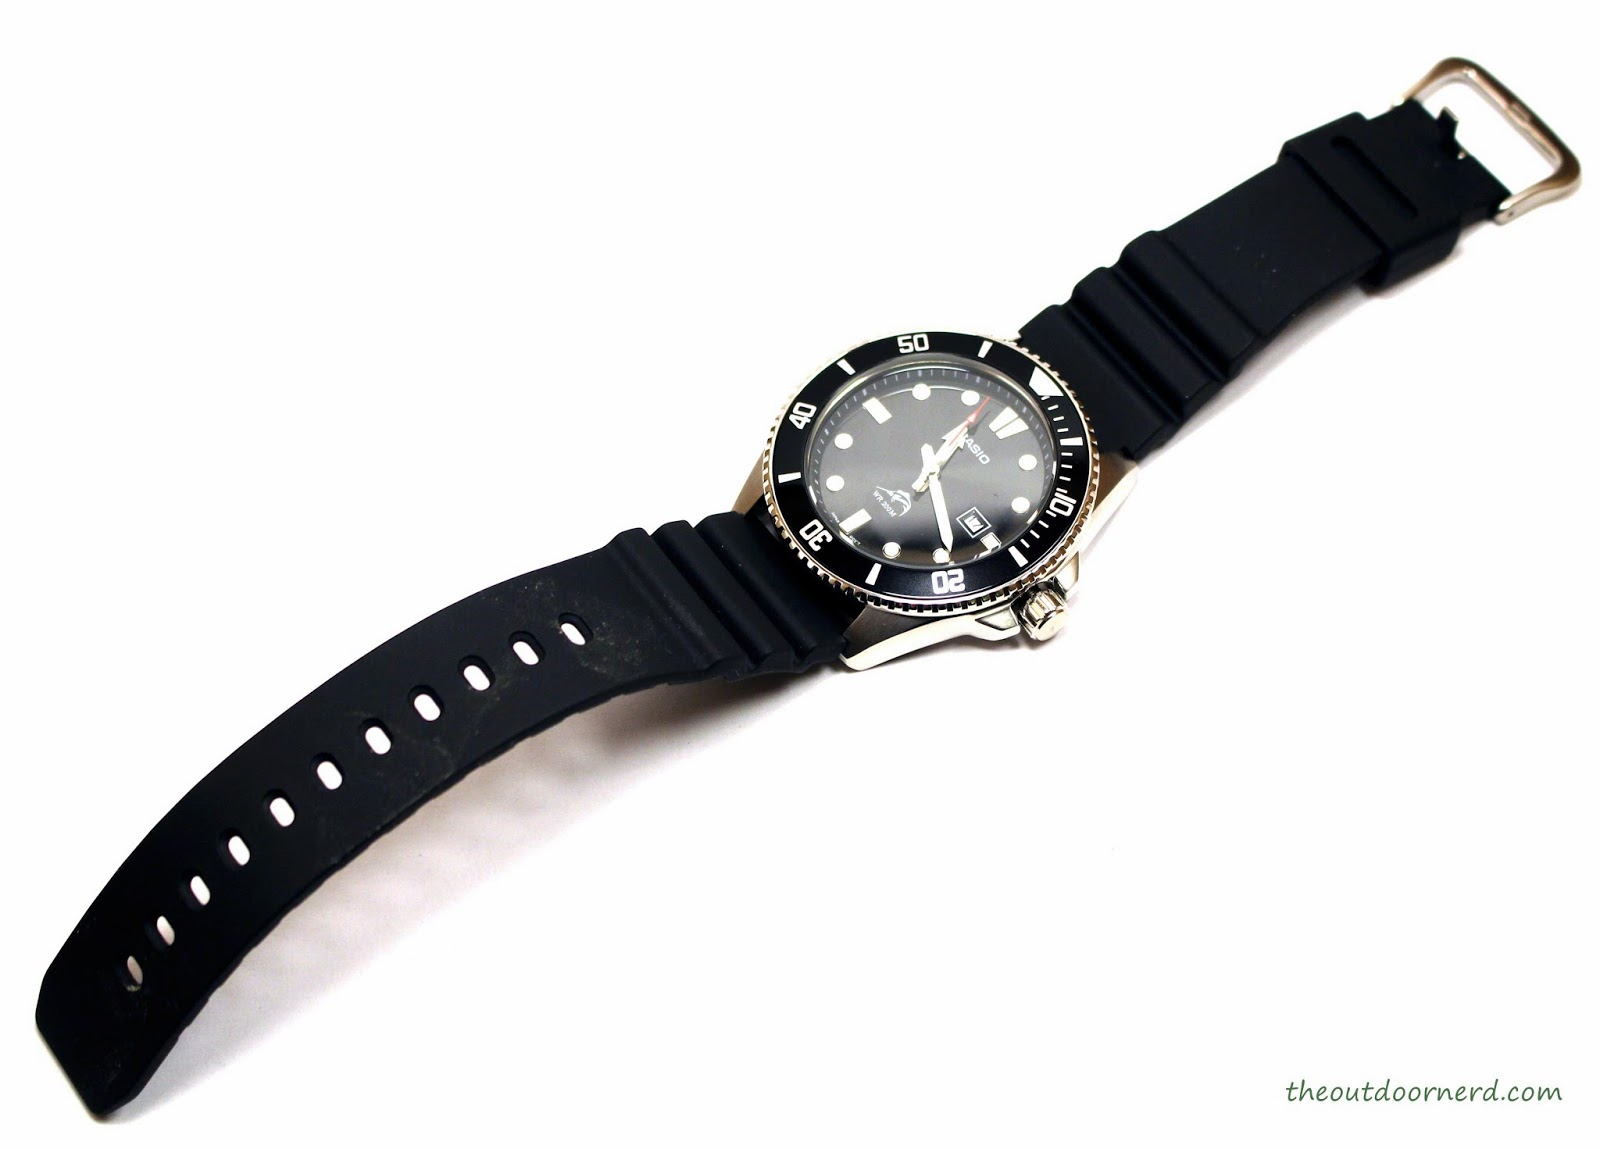 Casio MDV106-1A Diver's Watch: Entire Watch Top View